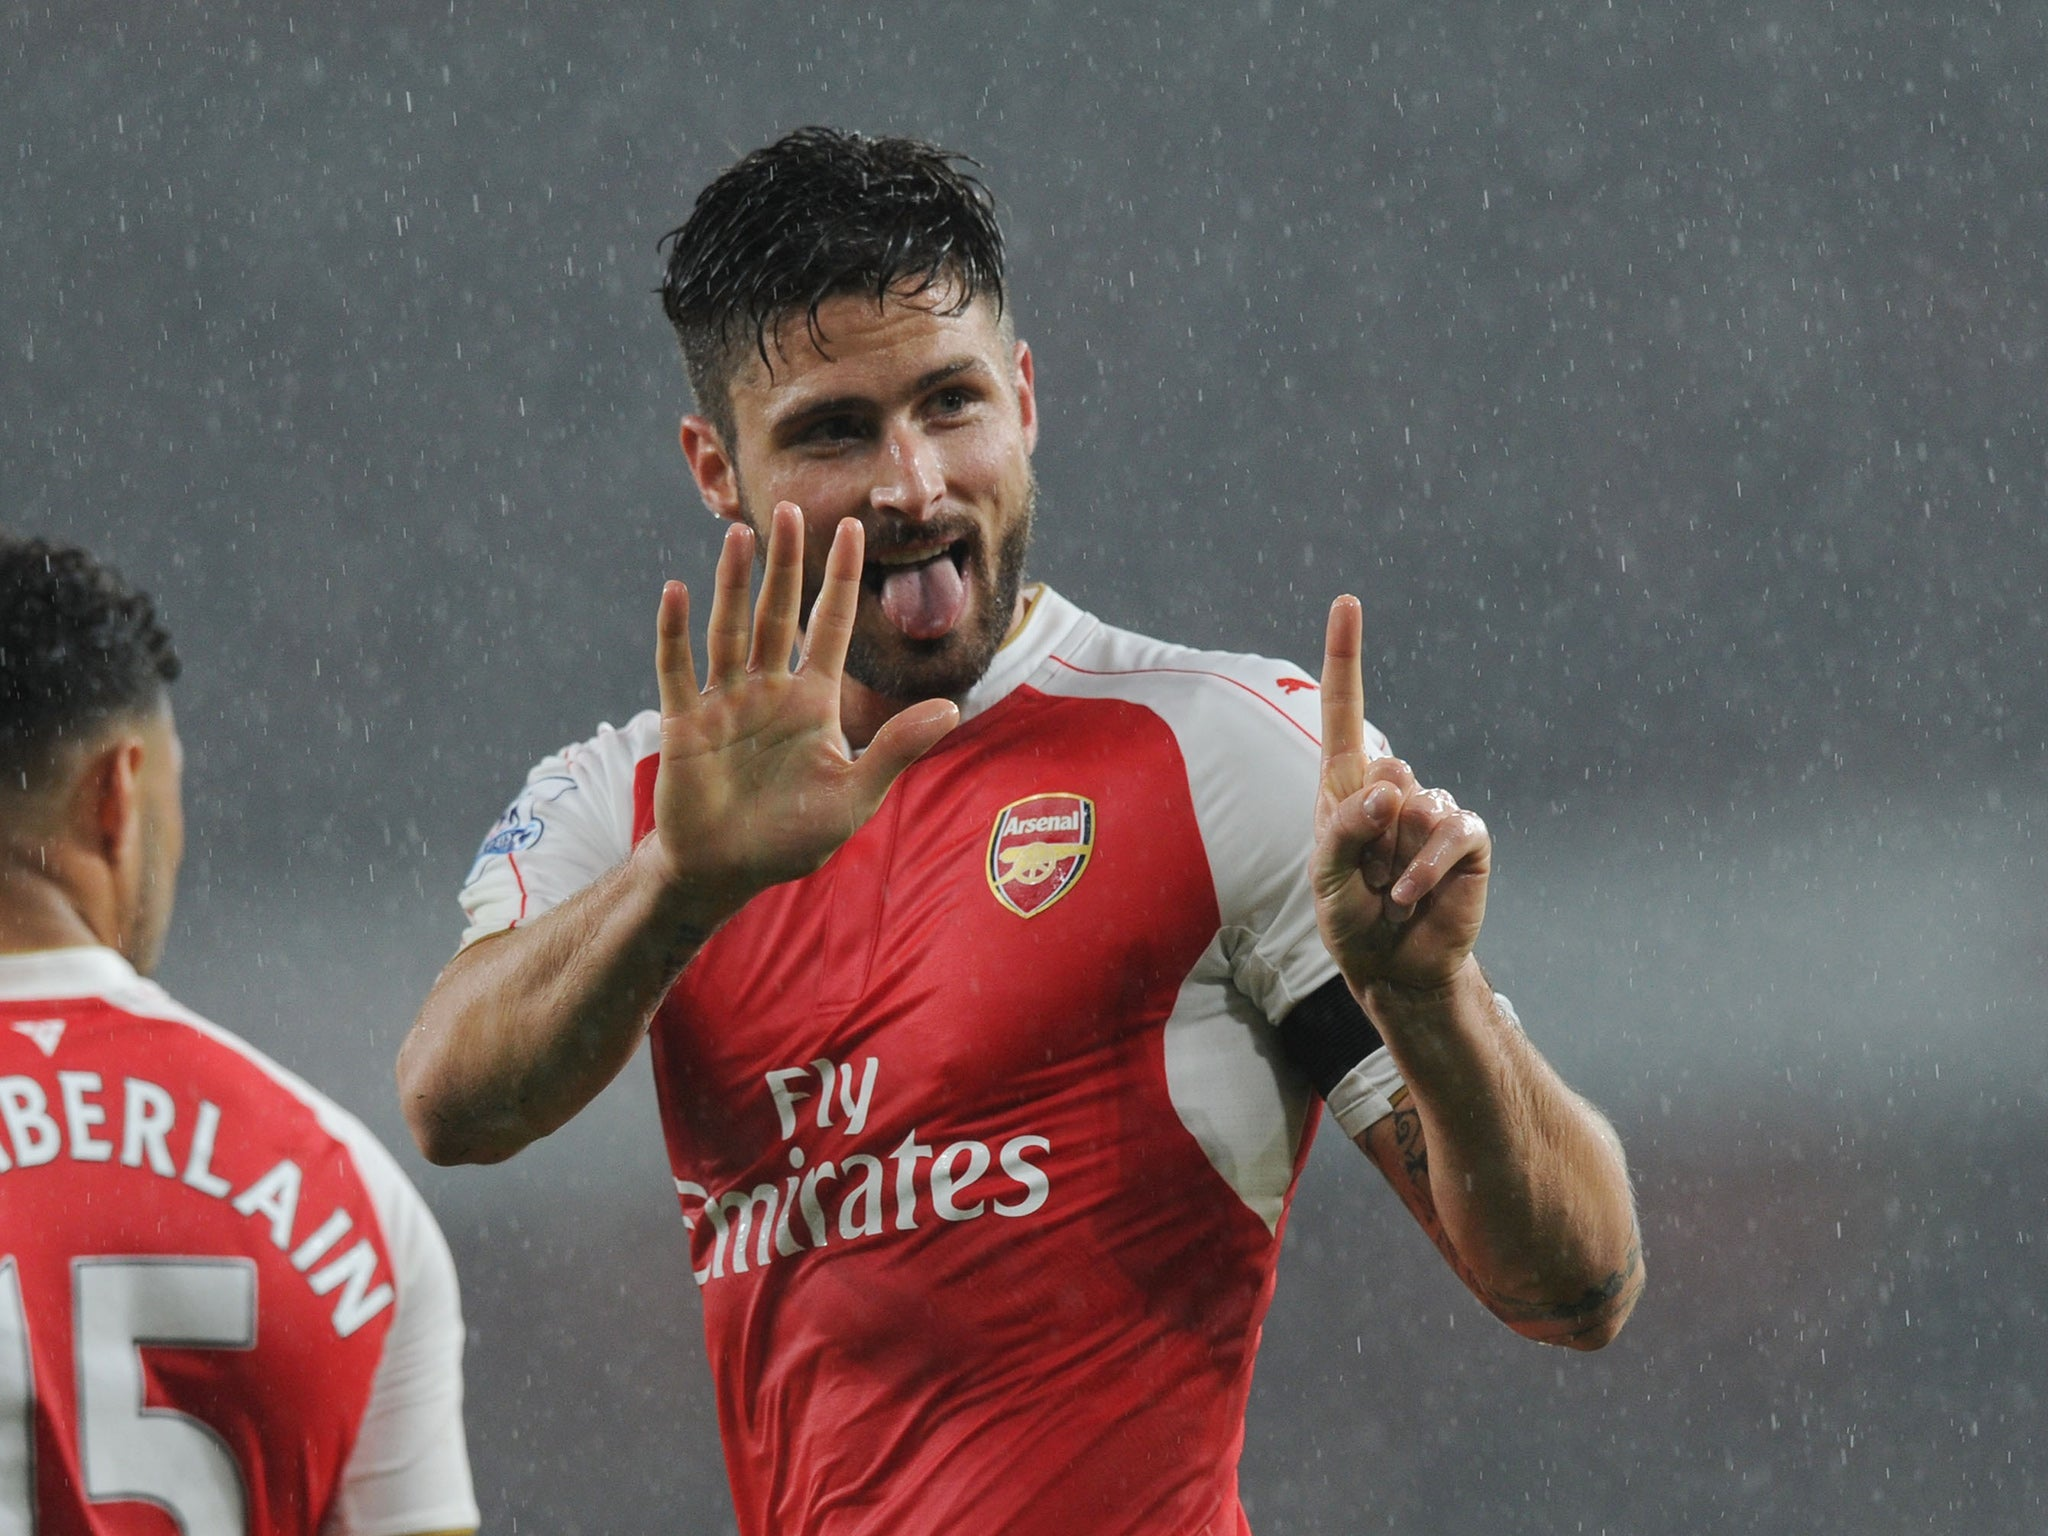 Swansea City vs Arsenal preview: Olivier Giroud can make the lone striker role his own with Theo Walcott out